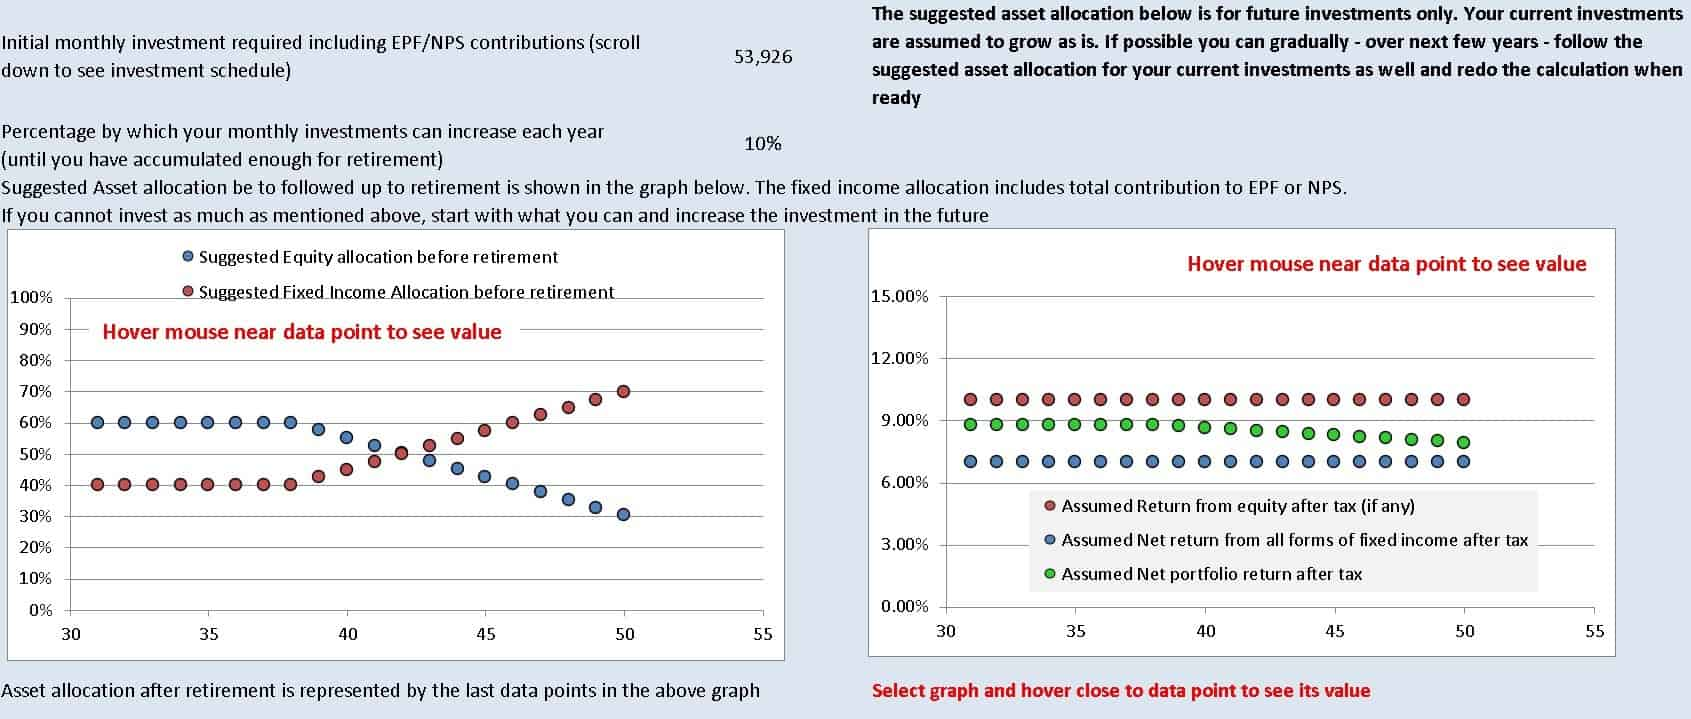 Screenshot from the freefincal robo advisory template showing the suggested asset allocation and change in assumed portfolio return